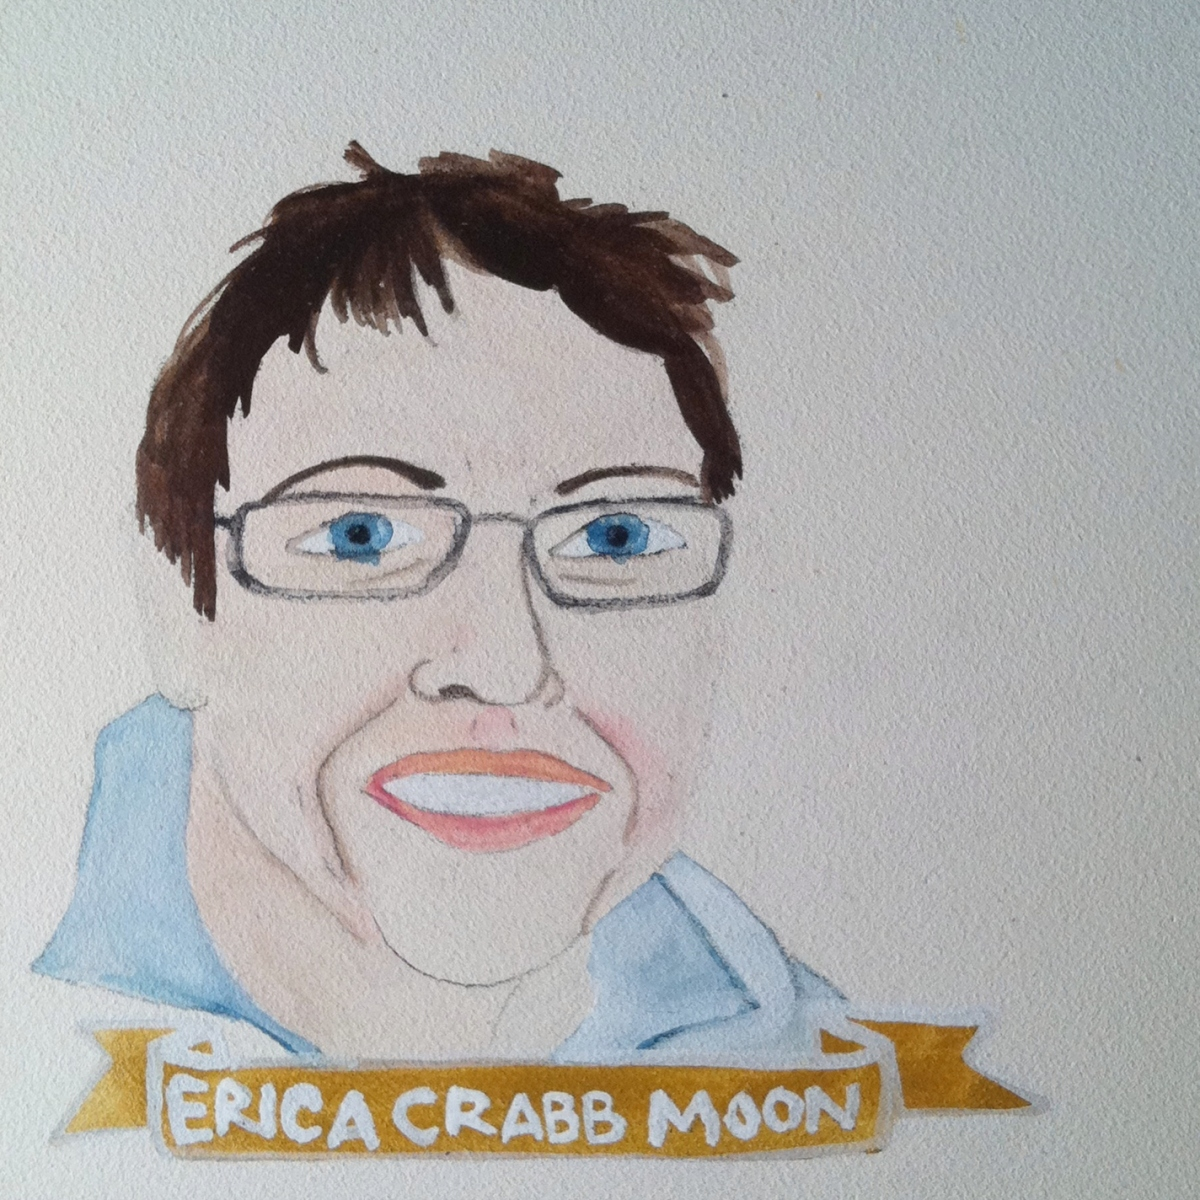 Talent Loves Company at Barbara Archer Gallery: 365 portraits by Lydia Walls - Erica Crabb Moon